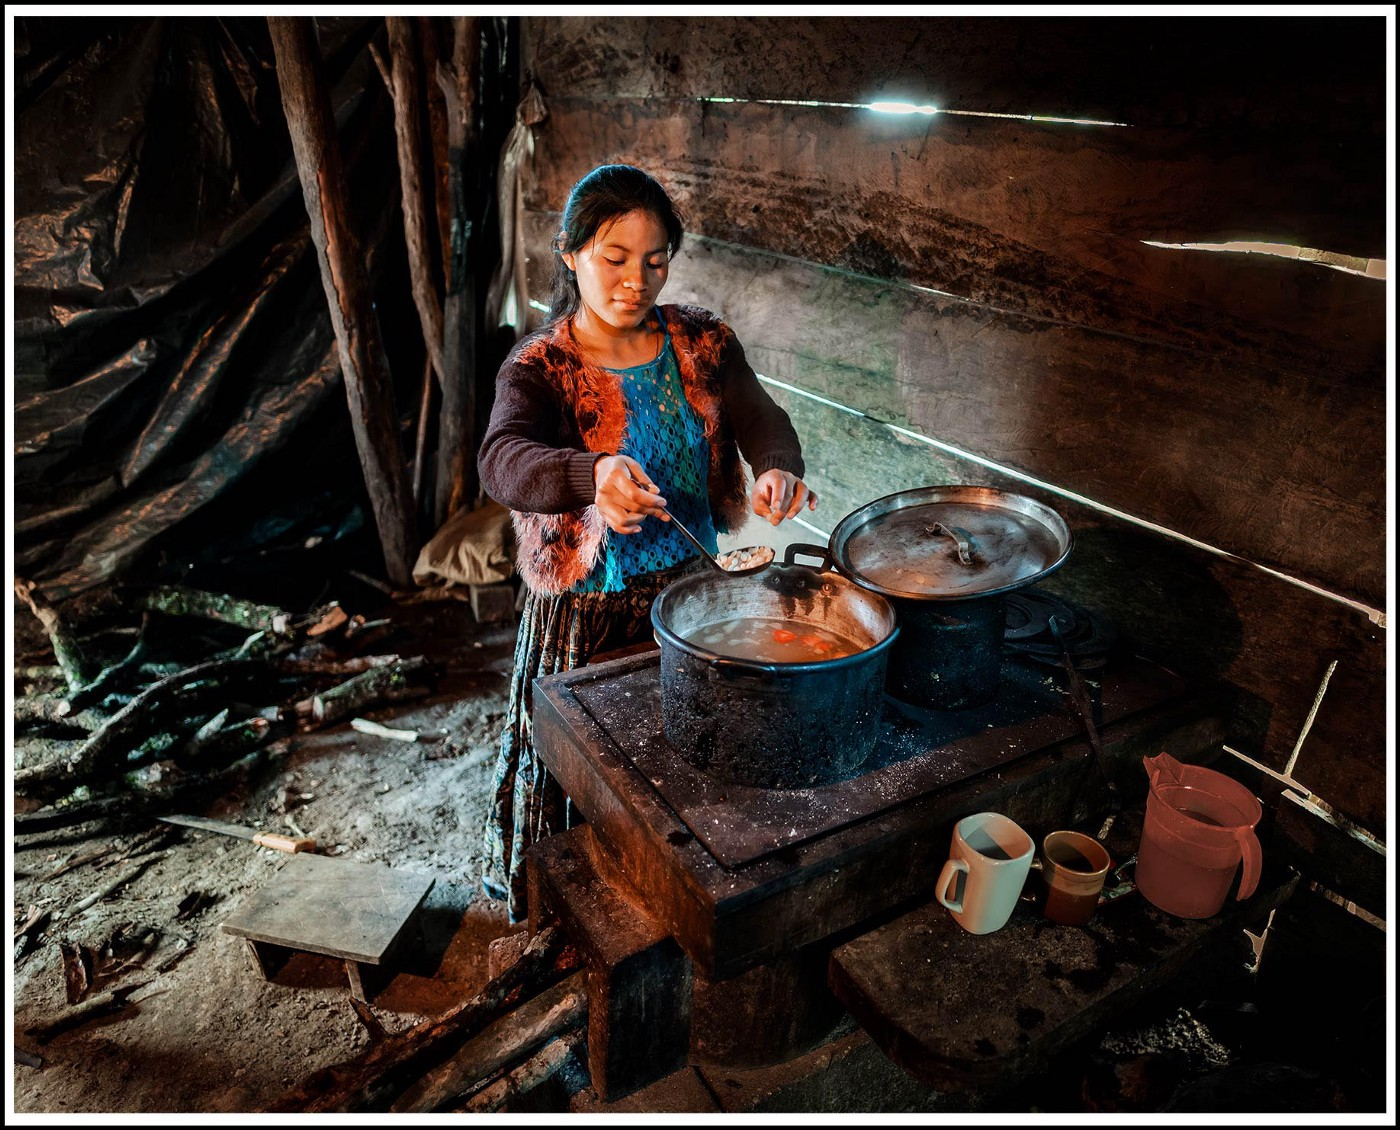 Lucrecia, a young Mayan woman makes a soup next to her wood-burning stove